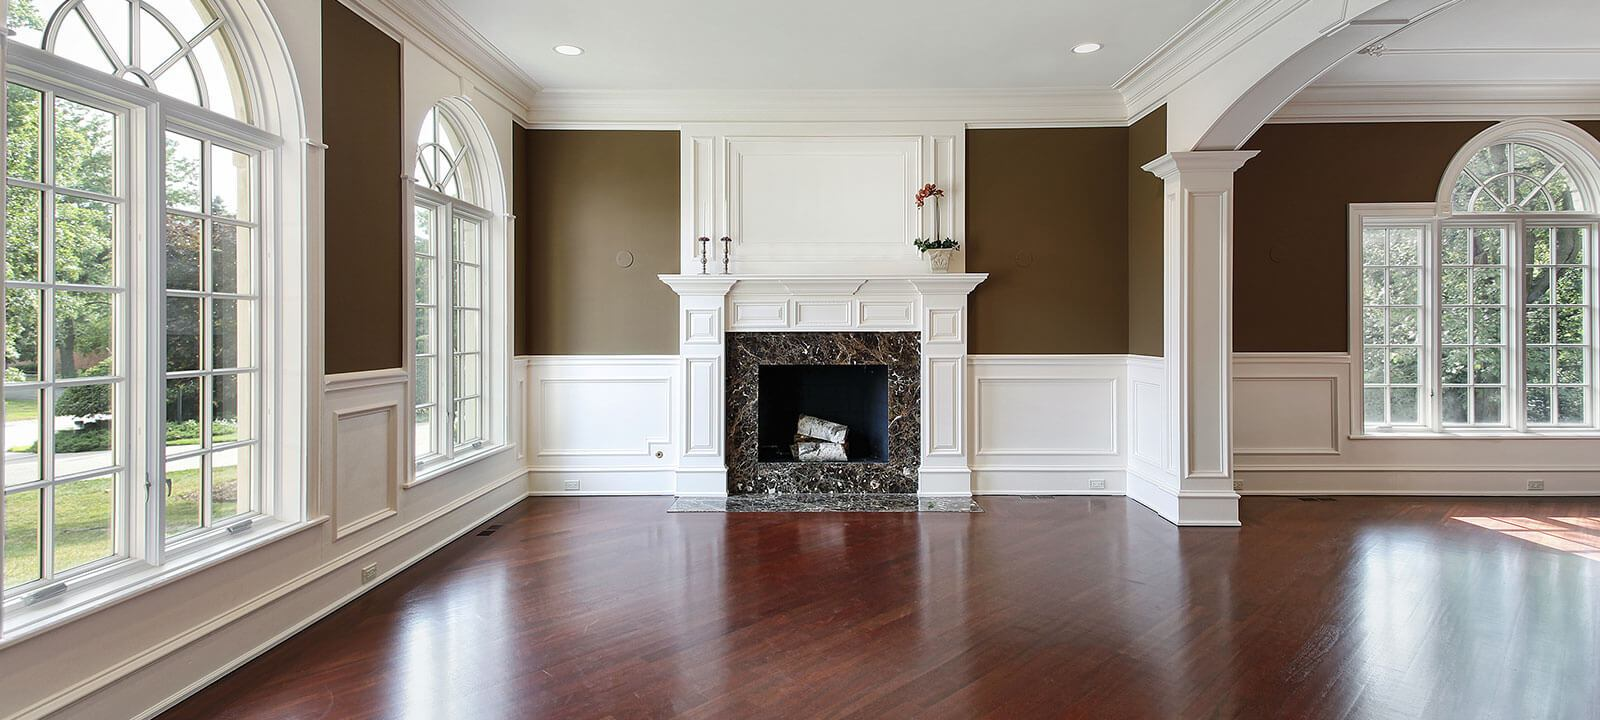 flooring services in glenview il ted u0027s flooring 847 292 5600